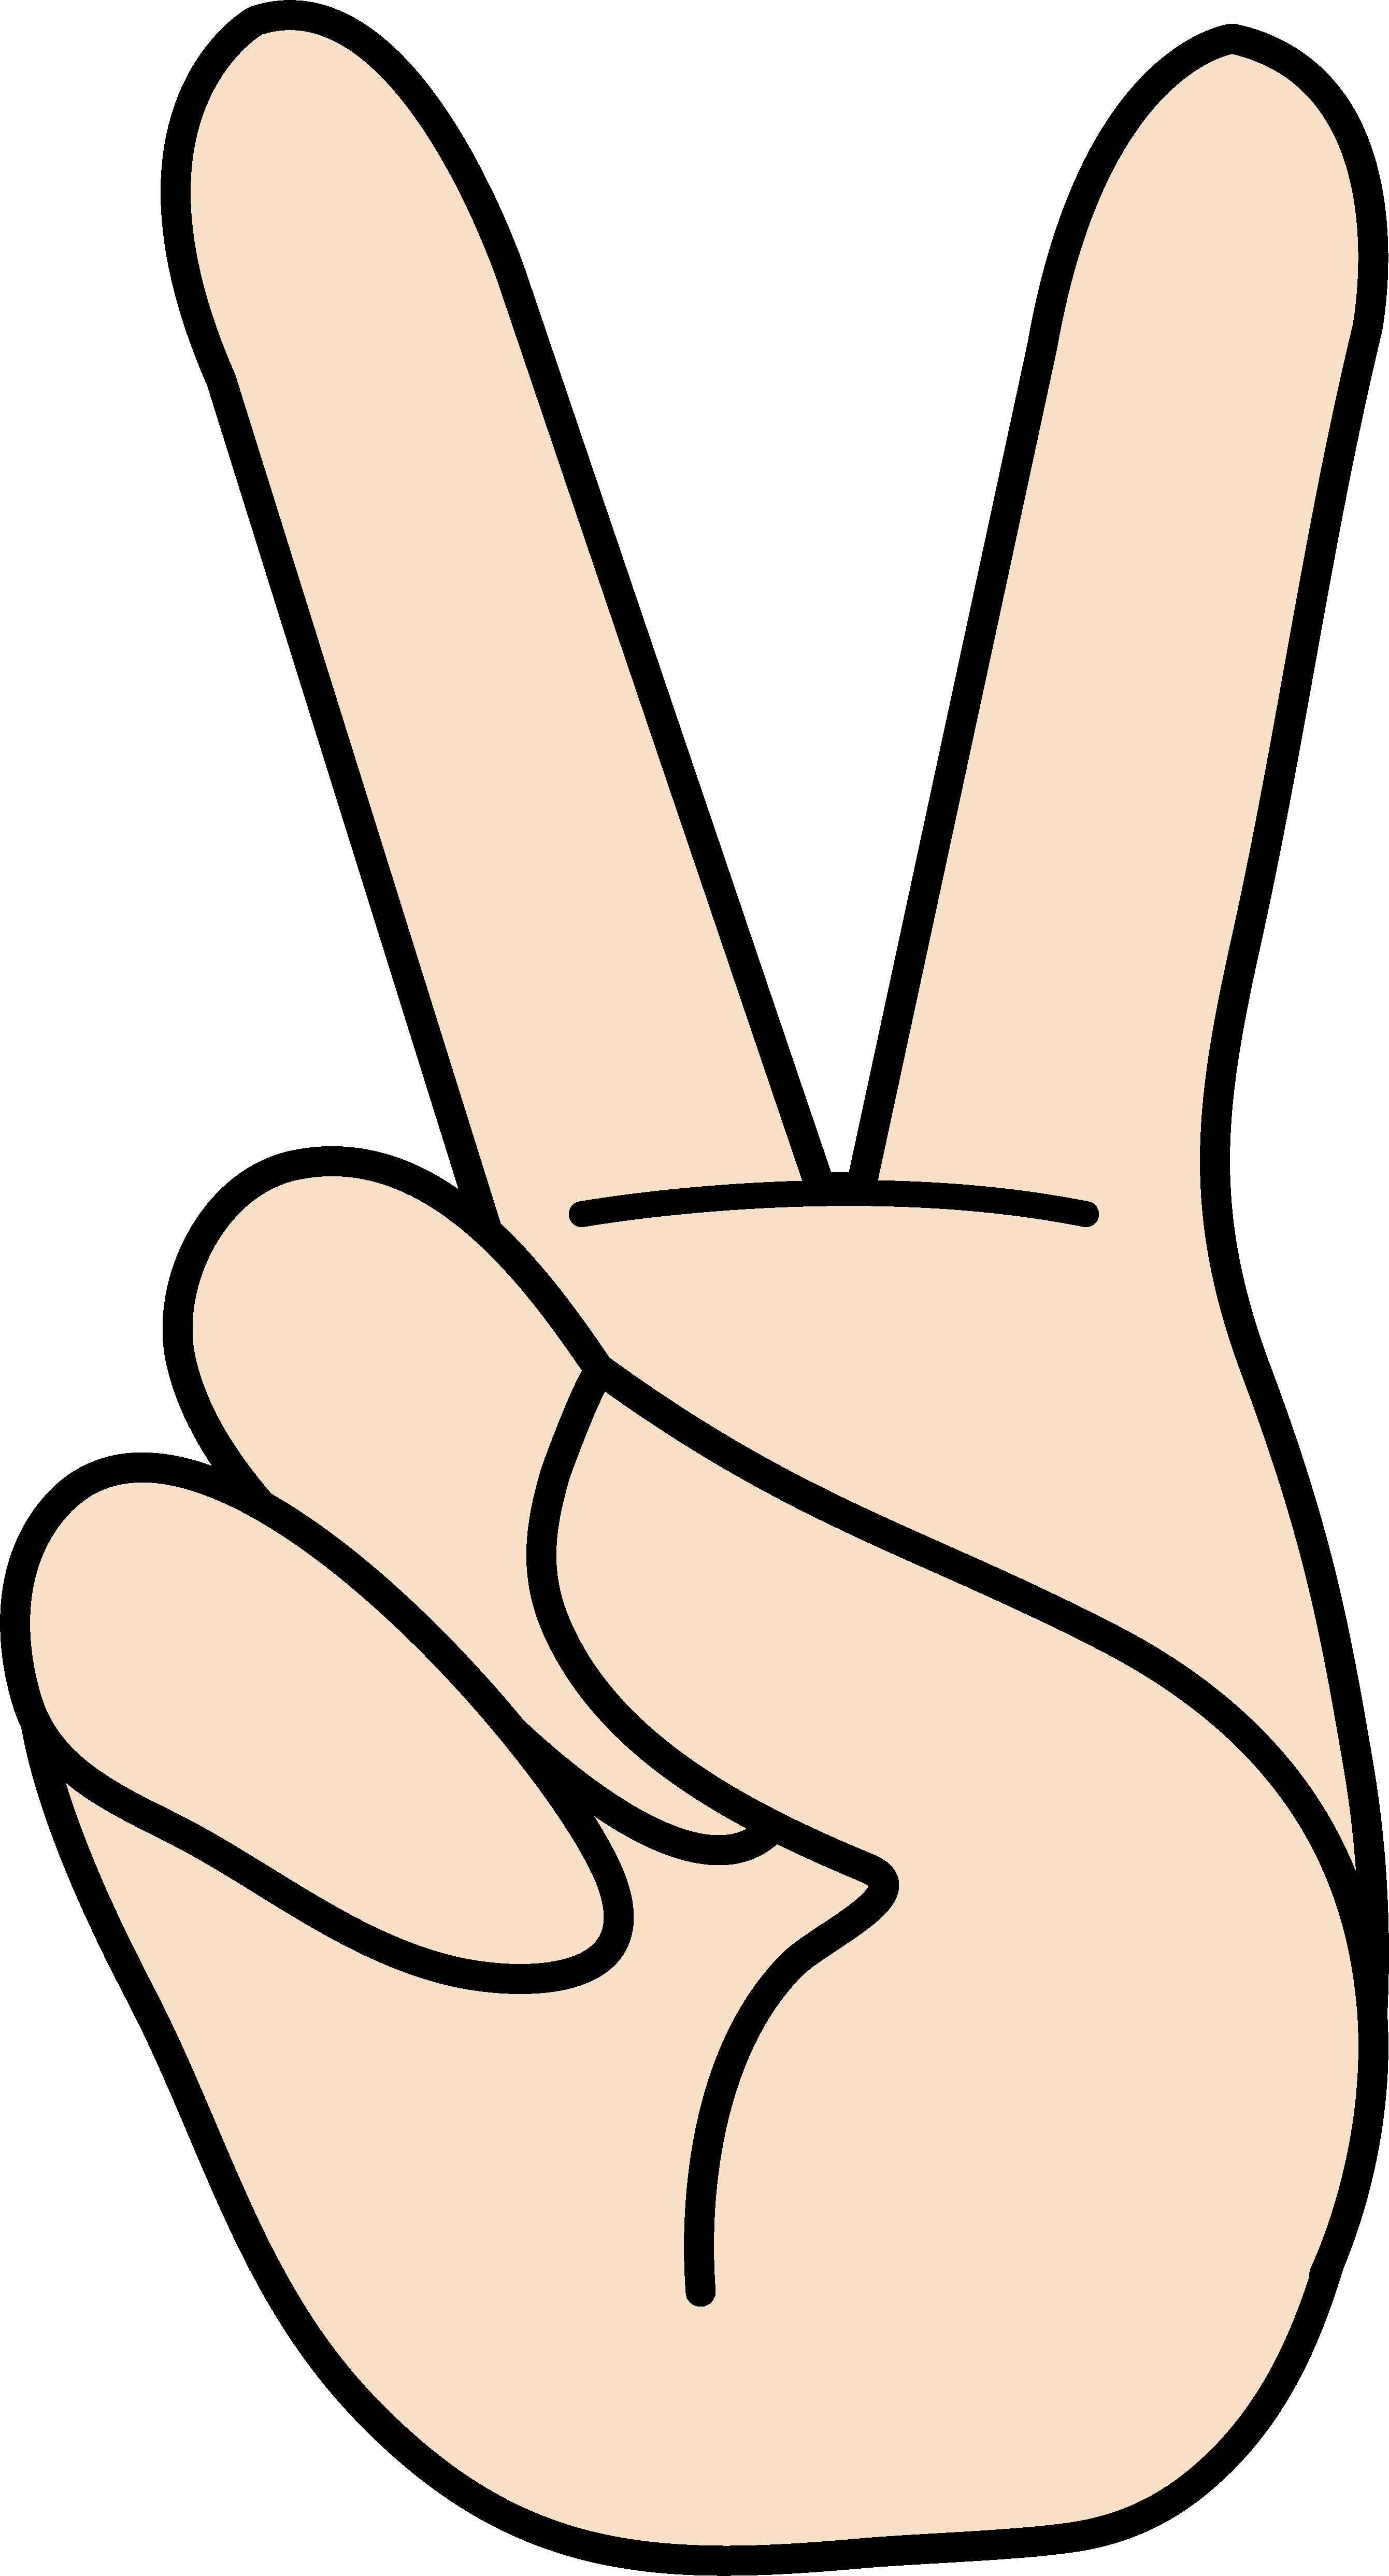 Hand signal clipart free png black and white library Peace Hand Sign Clipart - Free Clip Art png black and white library